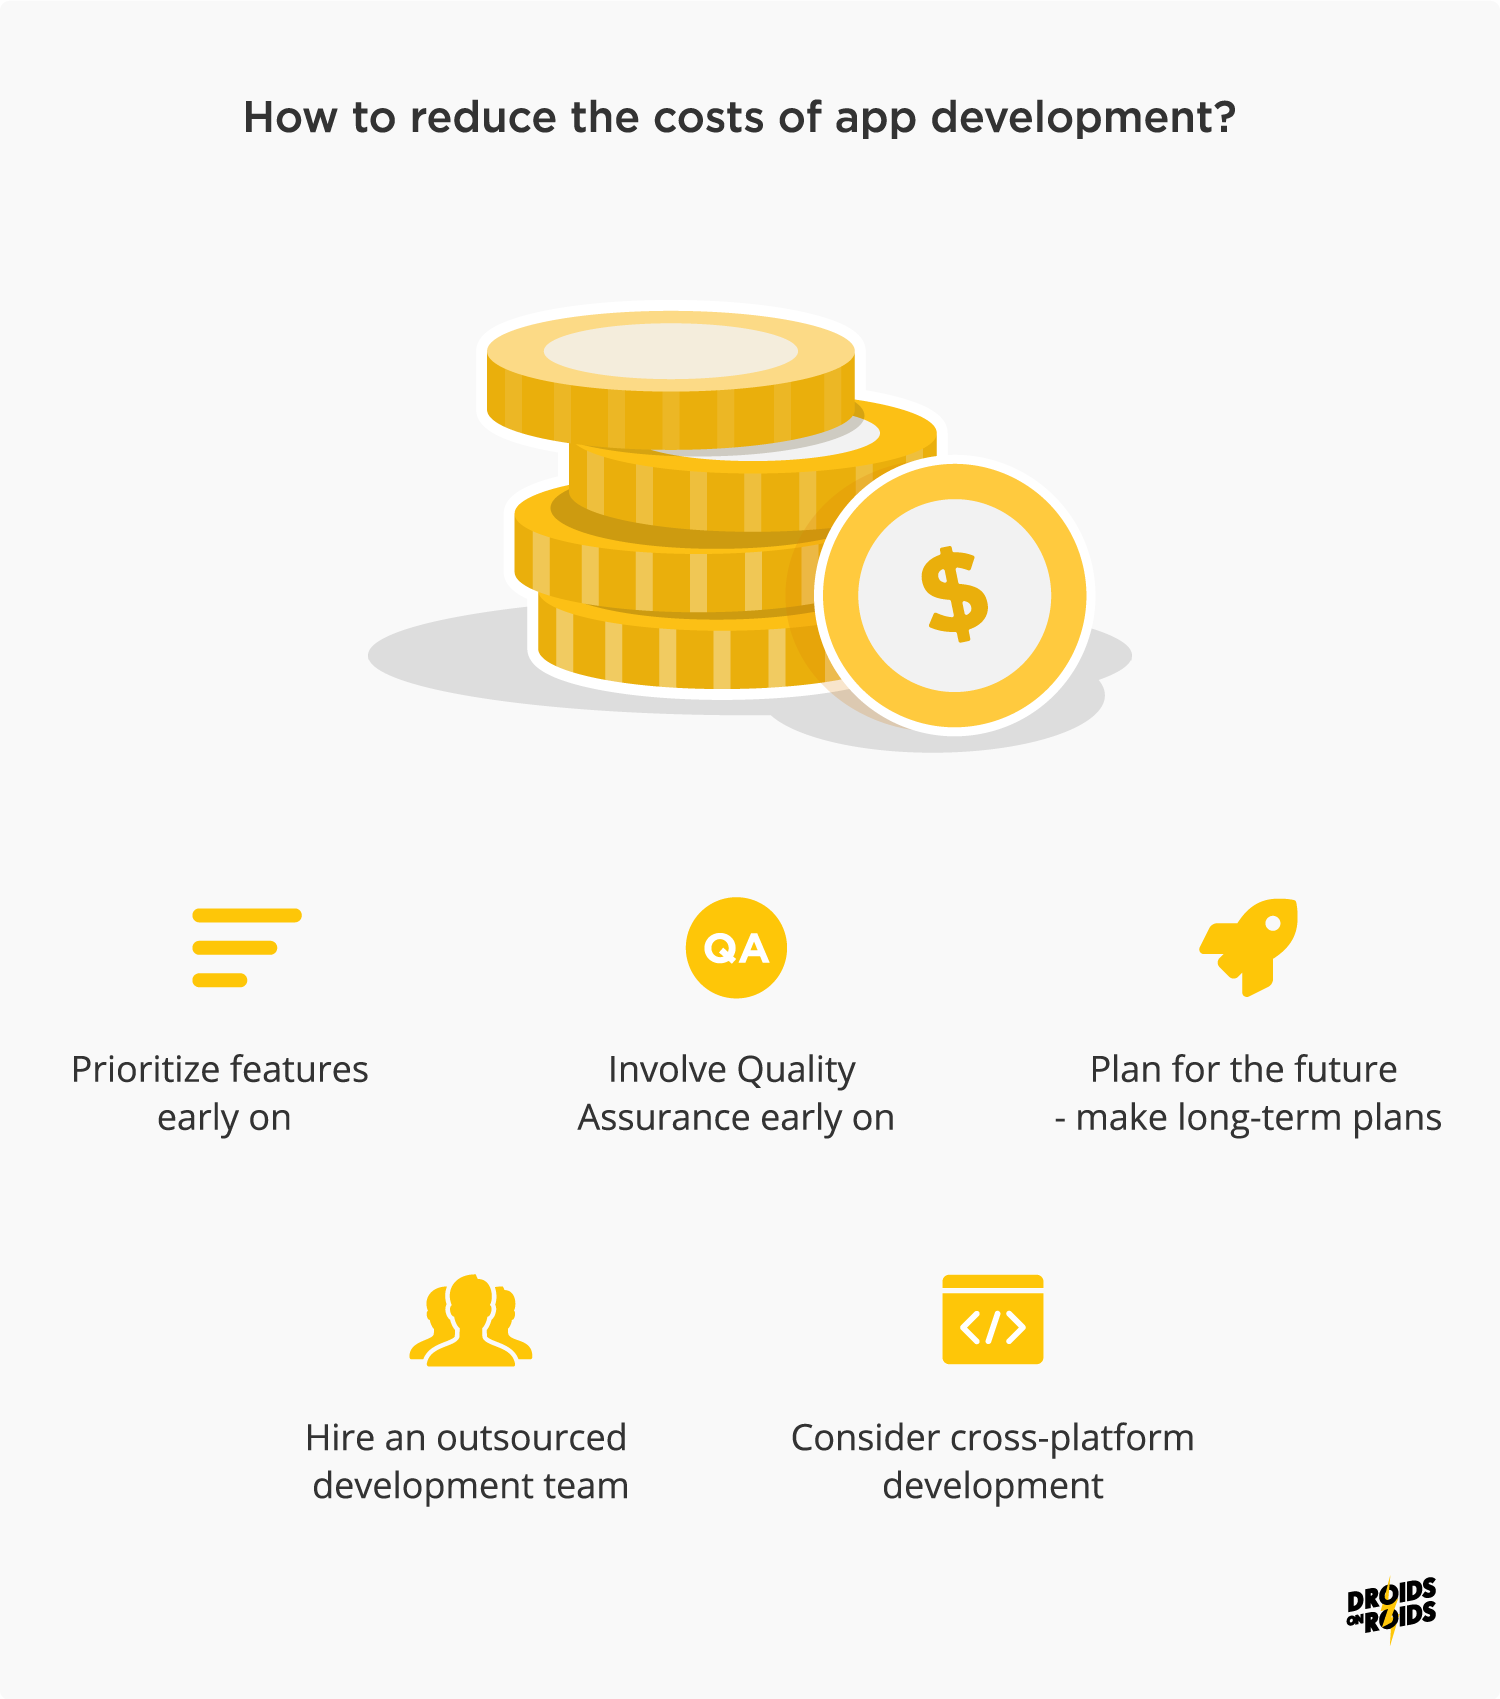 How to reduce the costs of app development